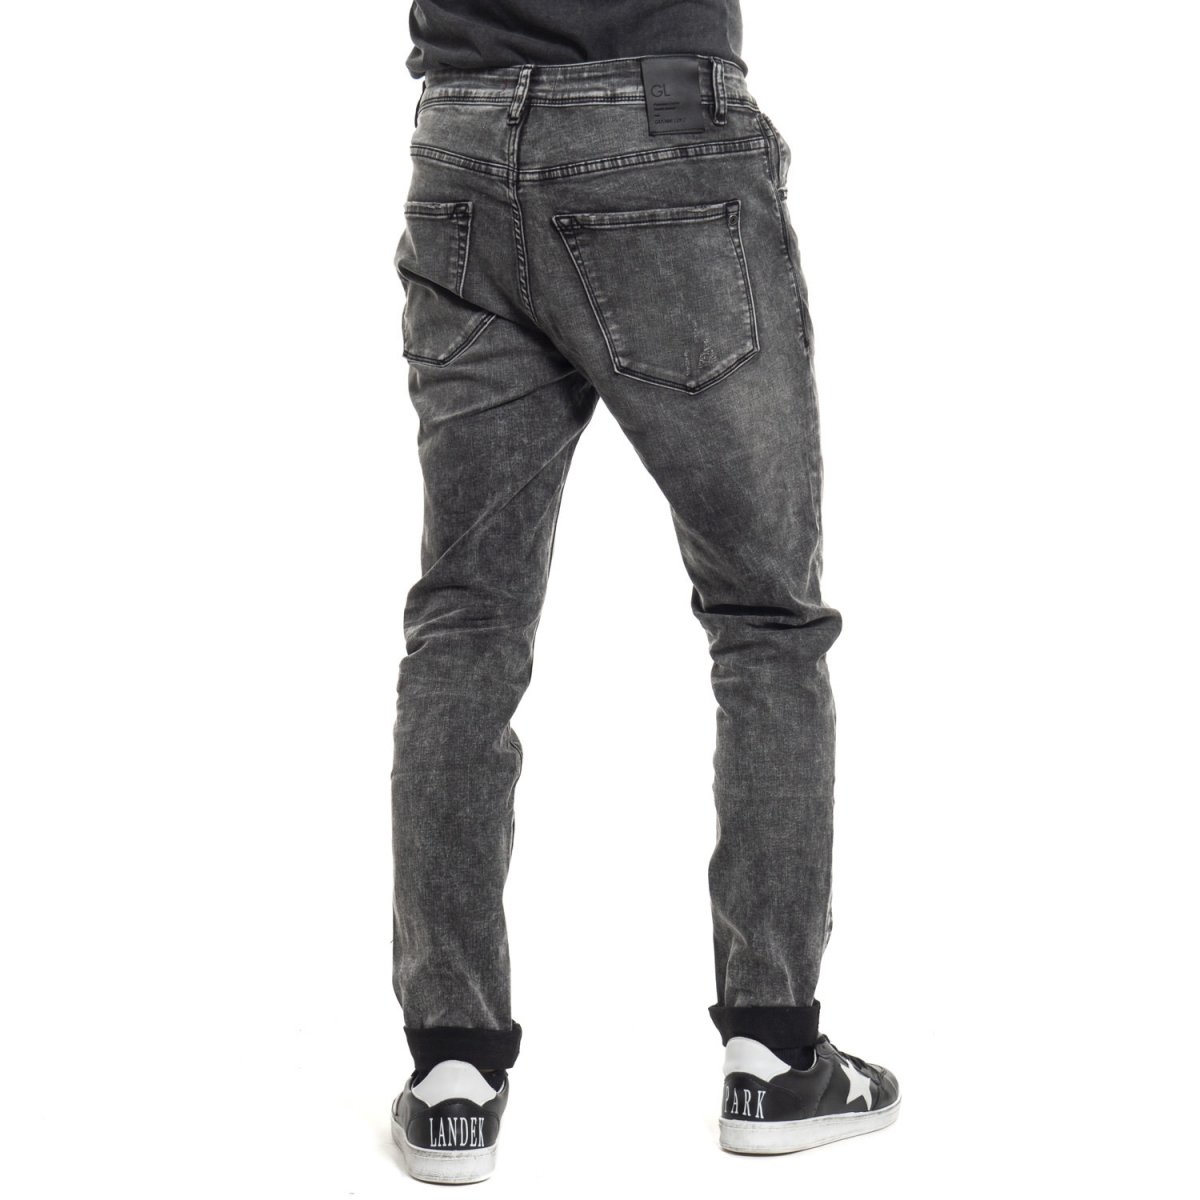 clothing Denim men Jeans GL080F GIANNI LUPO Cafedelmar Shop